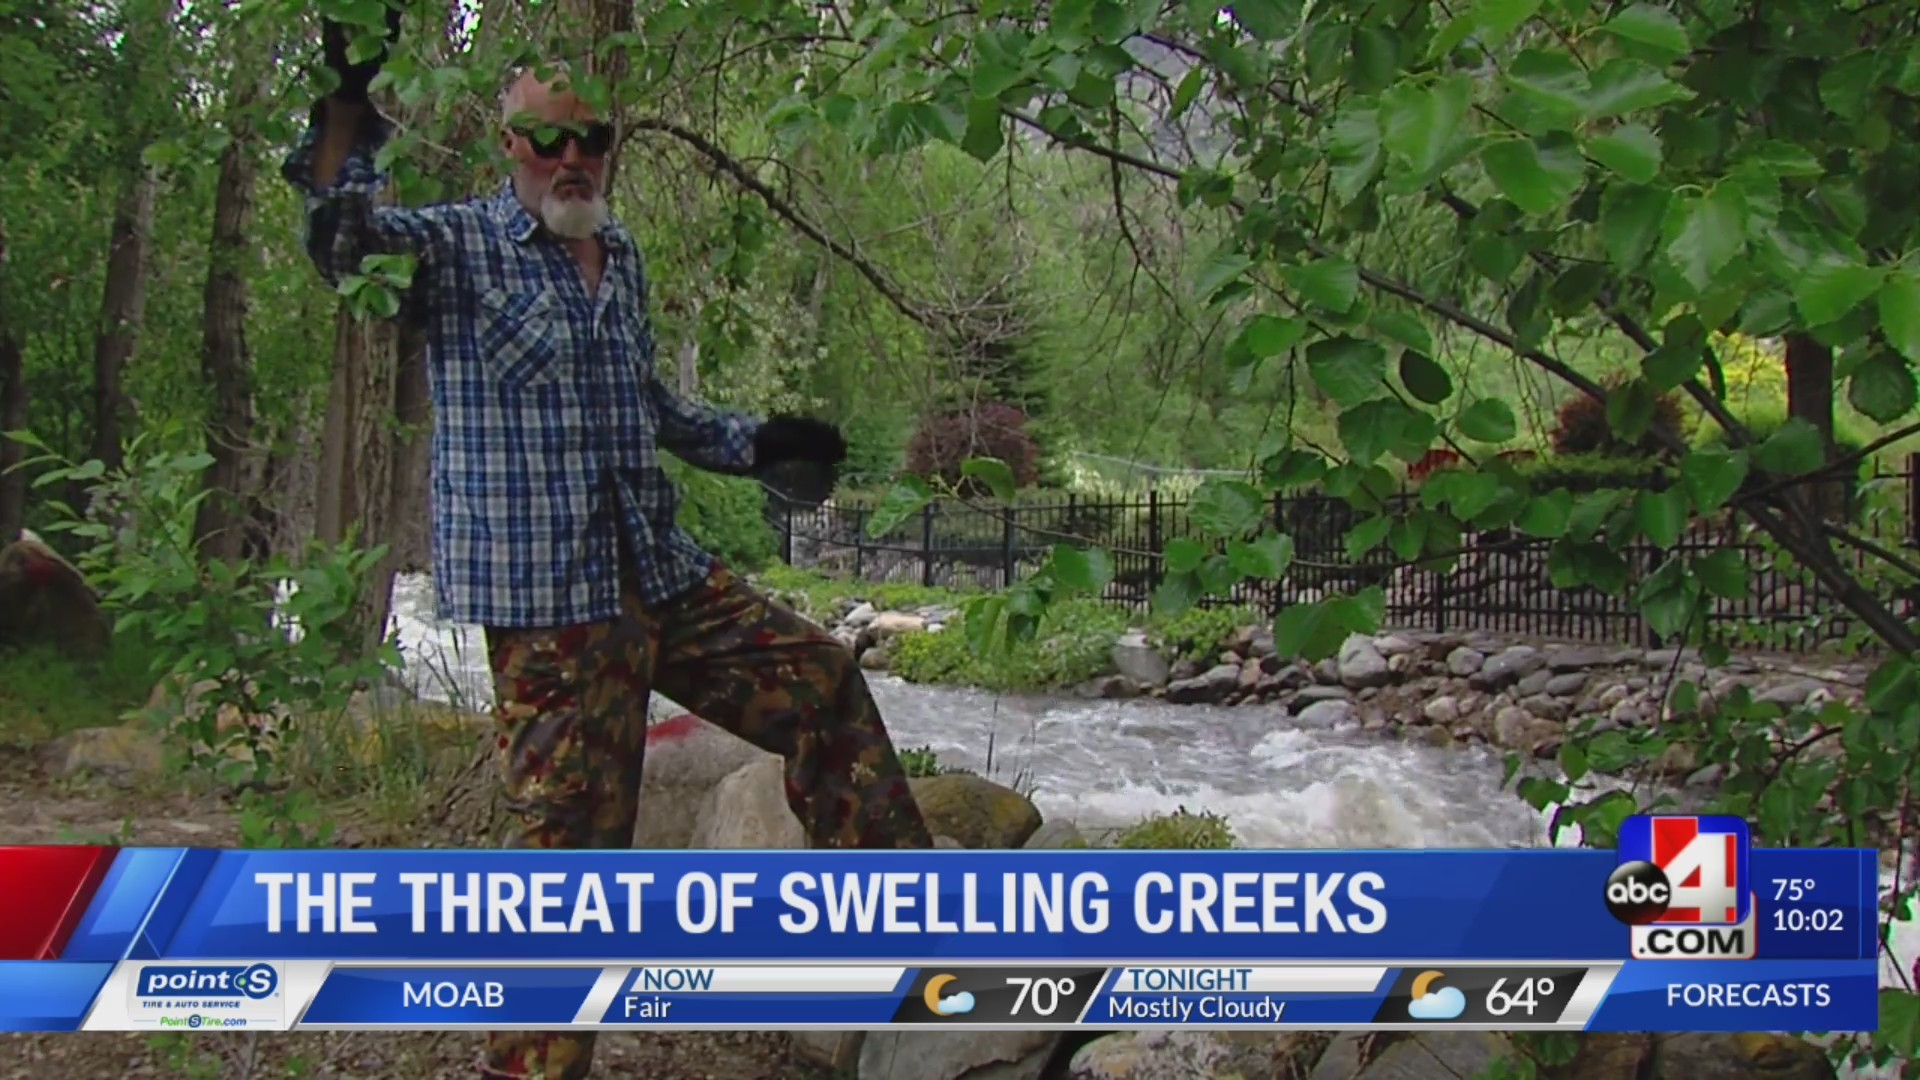 Trouble in the canyons: the threat of swelling creeks